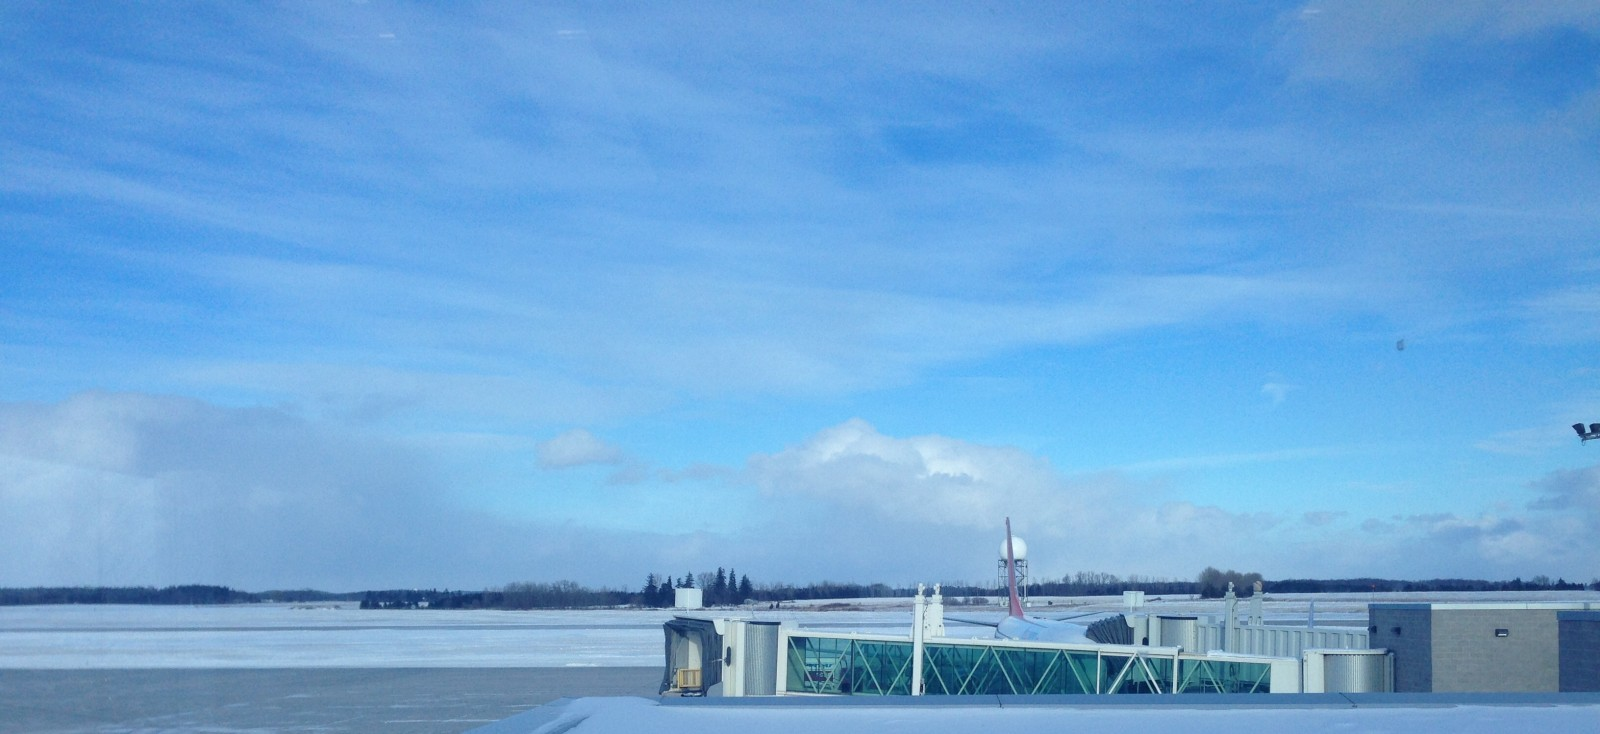 London Airport doing just fine in the winter weather